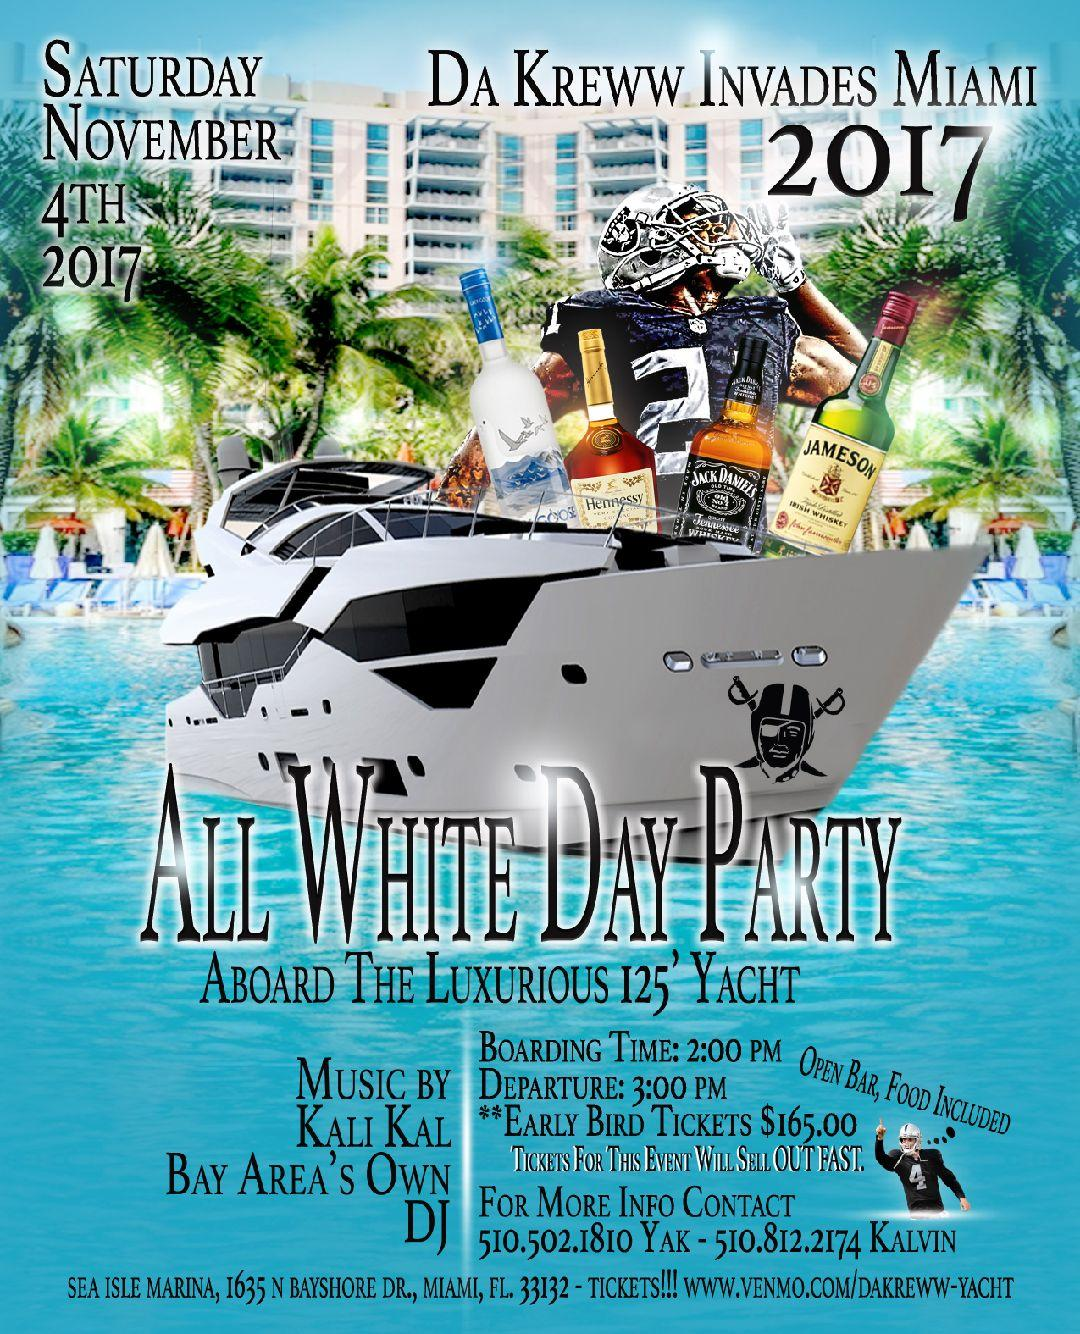 DA'KREWW INVADE MIAMI 2017 YACHT PARTY